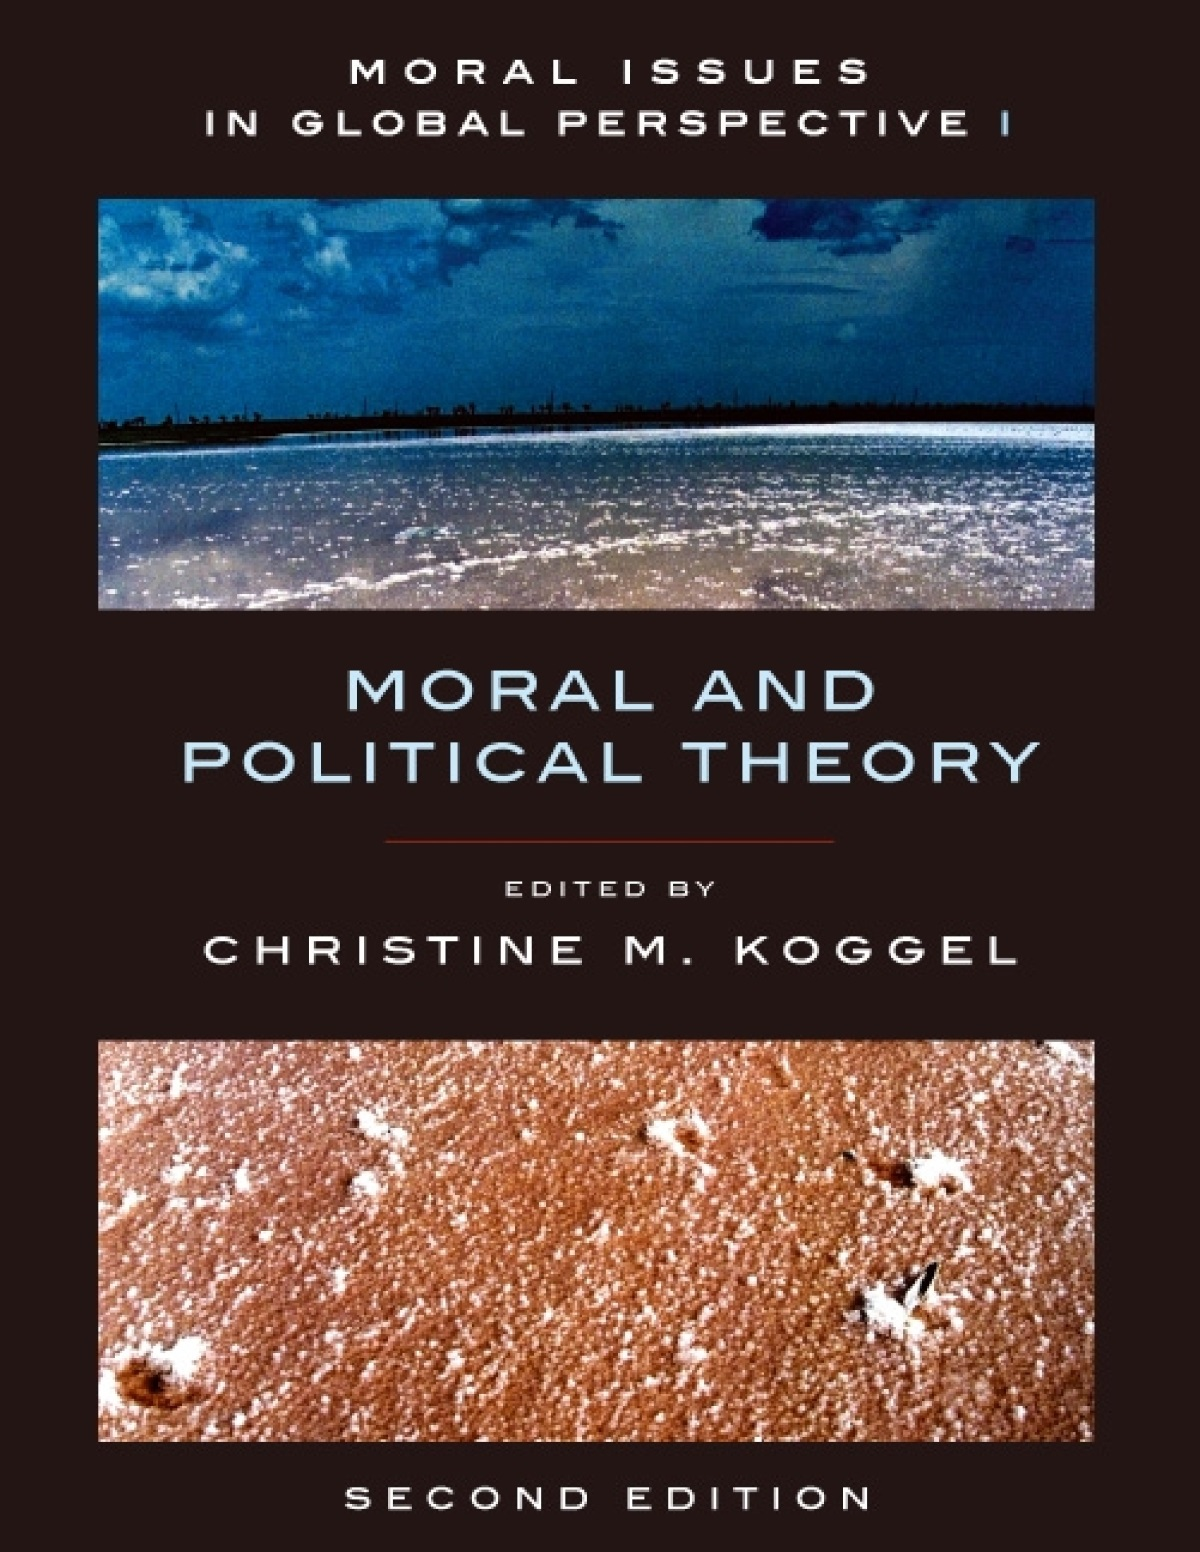 Ethical theory a concise anthology third edition broadview press moral issues in global perspective volume 1 moral and political theory second edition fandeluxe Gallery